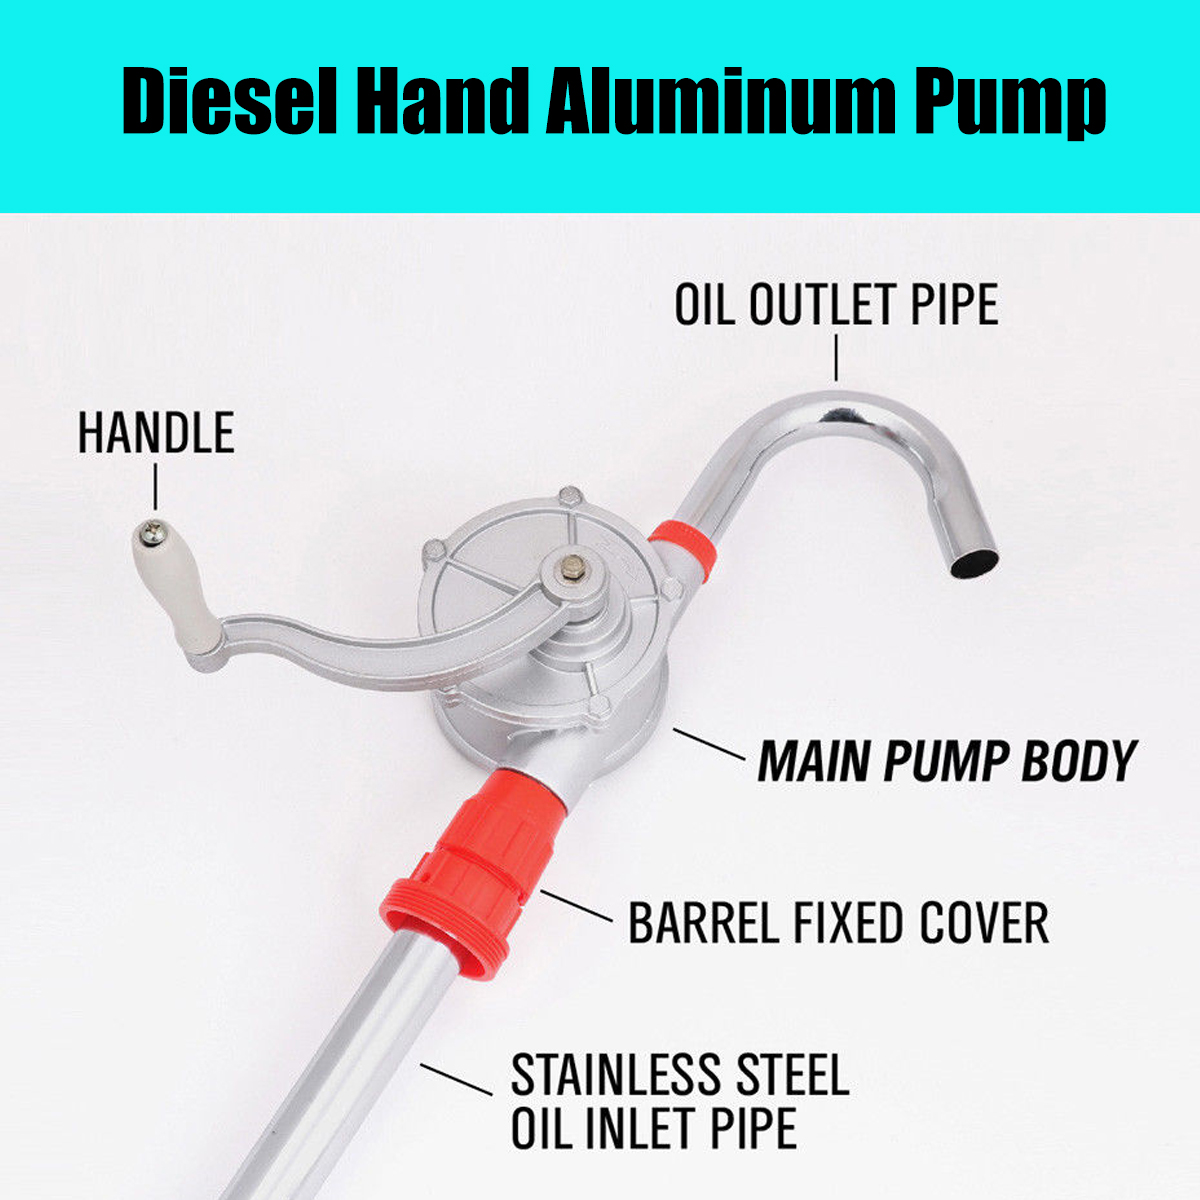 30L/m Hand Oil Pump Rotary Suction Crank Barrel Drum Pumping Petrol Diesel Fuel